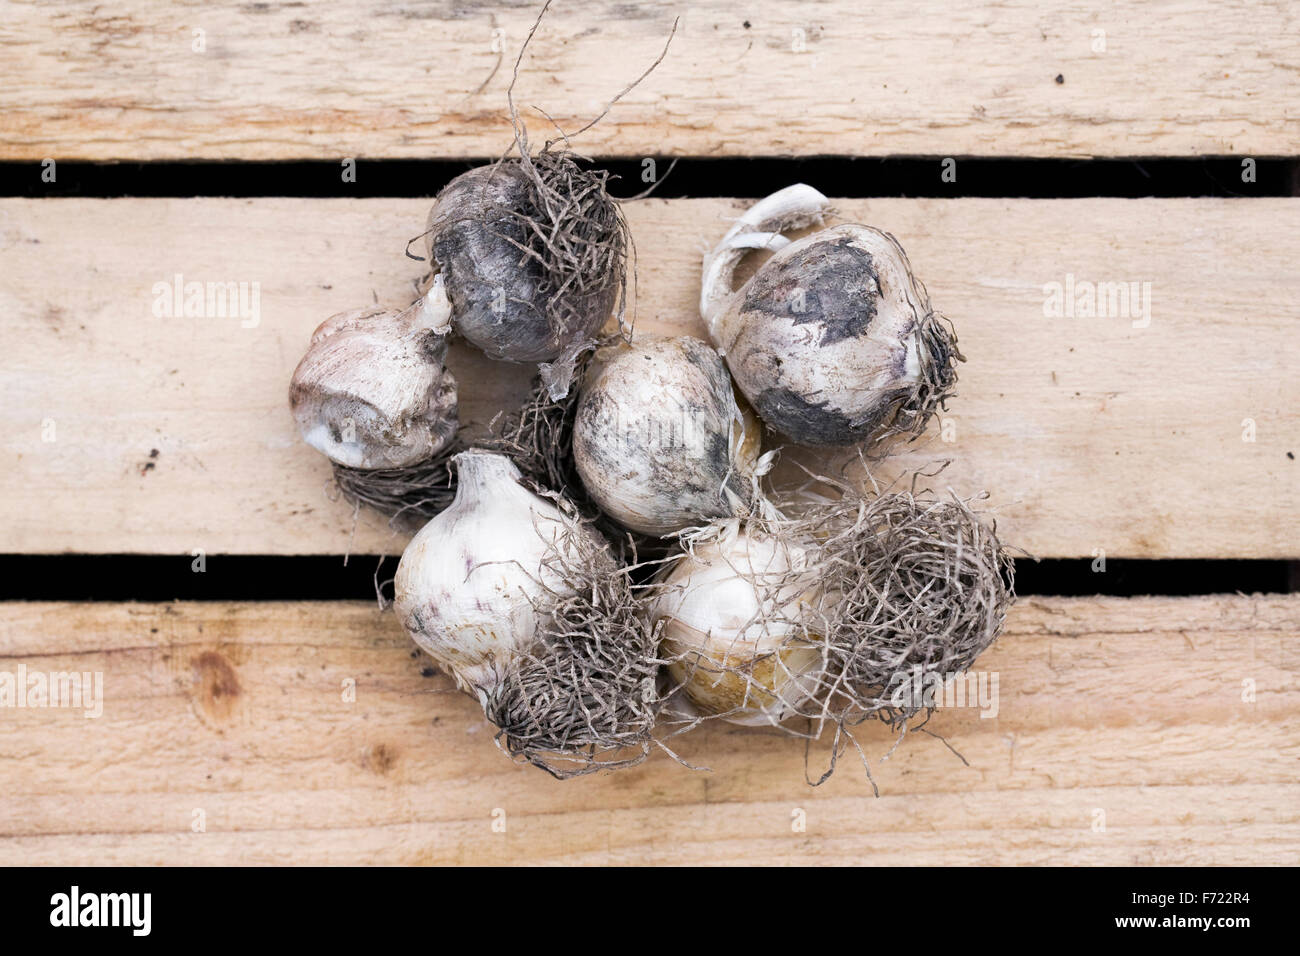 Allium nigrum bulbs. Stock Photo